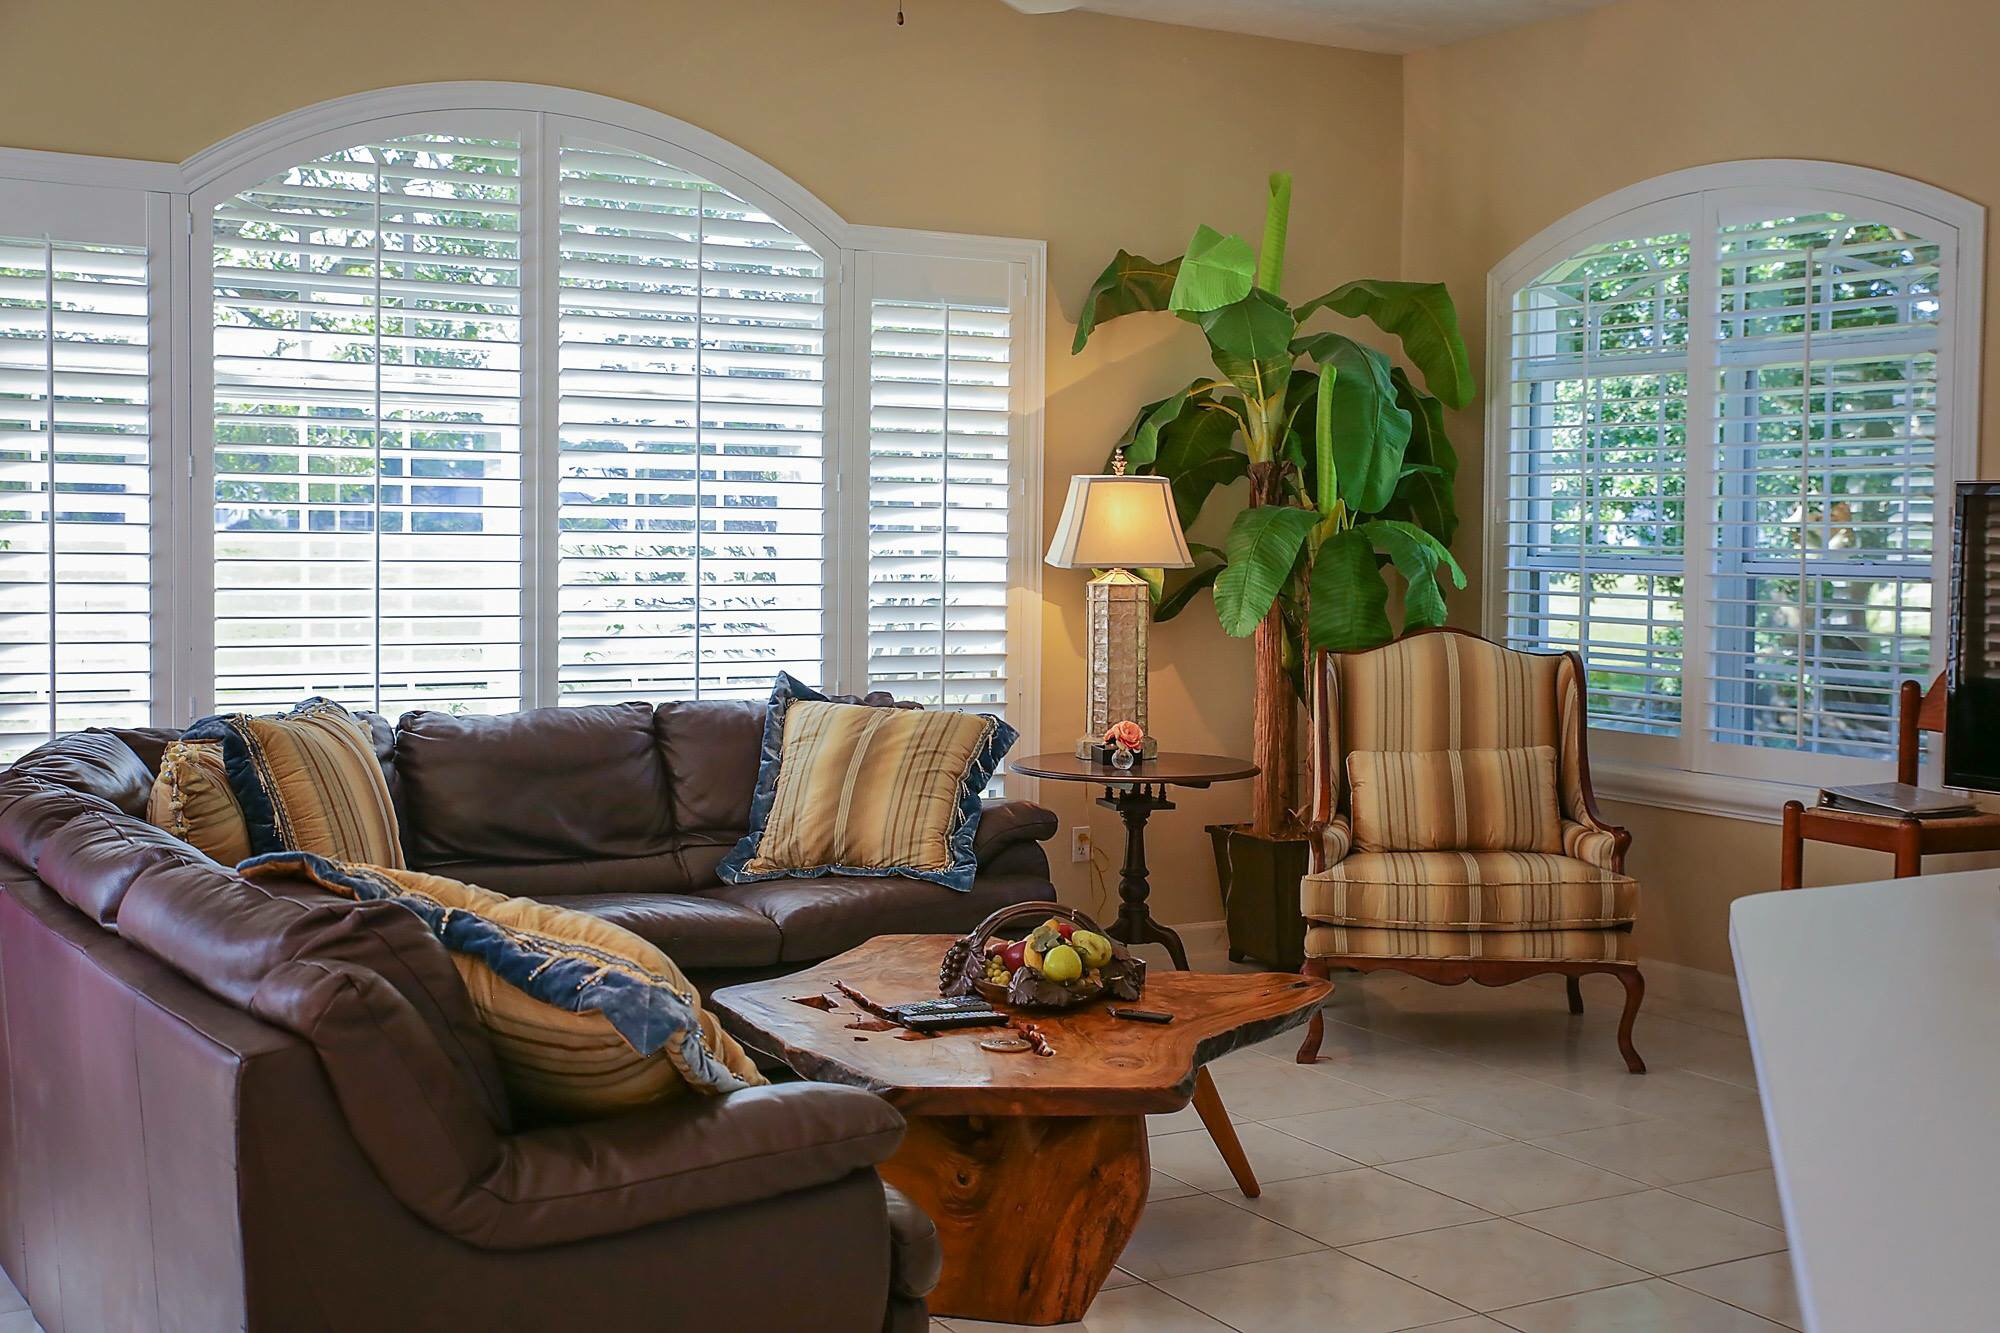 Whole Vertical Blinds 6001 Georgia Ave West Palm Beach Fl 33405 Yp